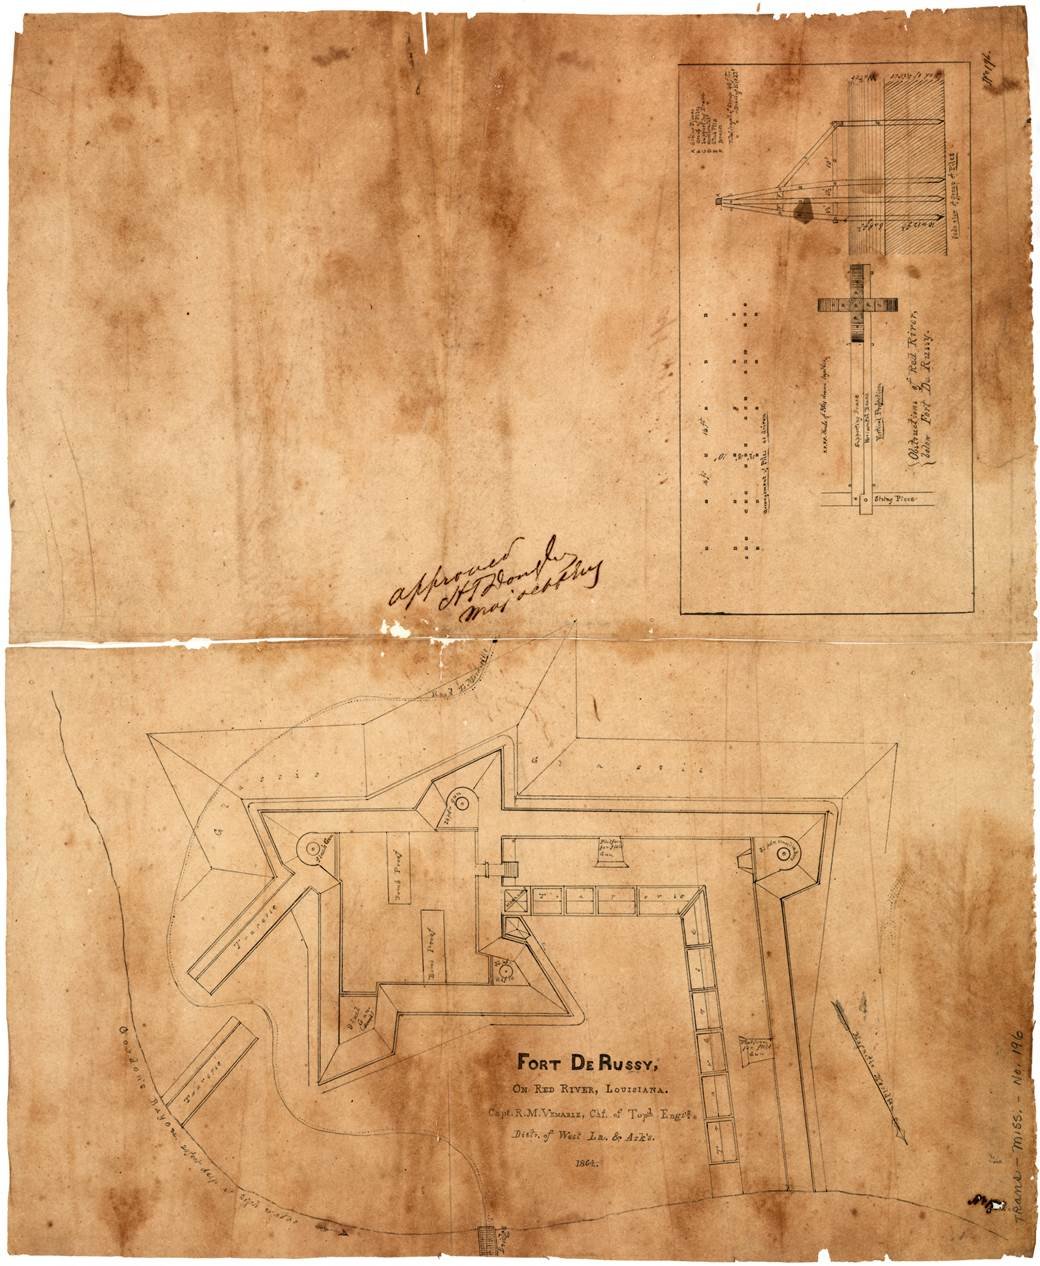 Fort_DeRussy_on_Red_River_Louisiana